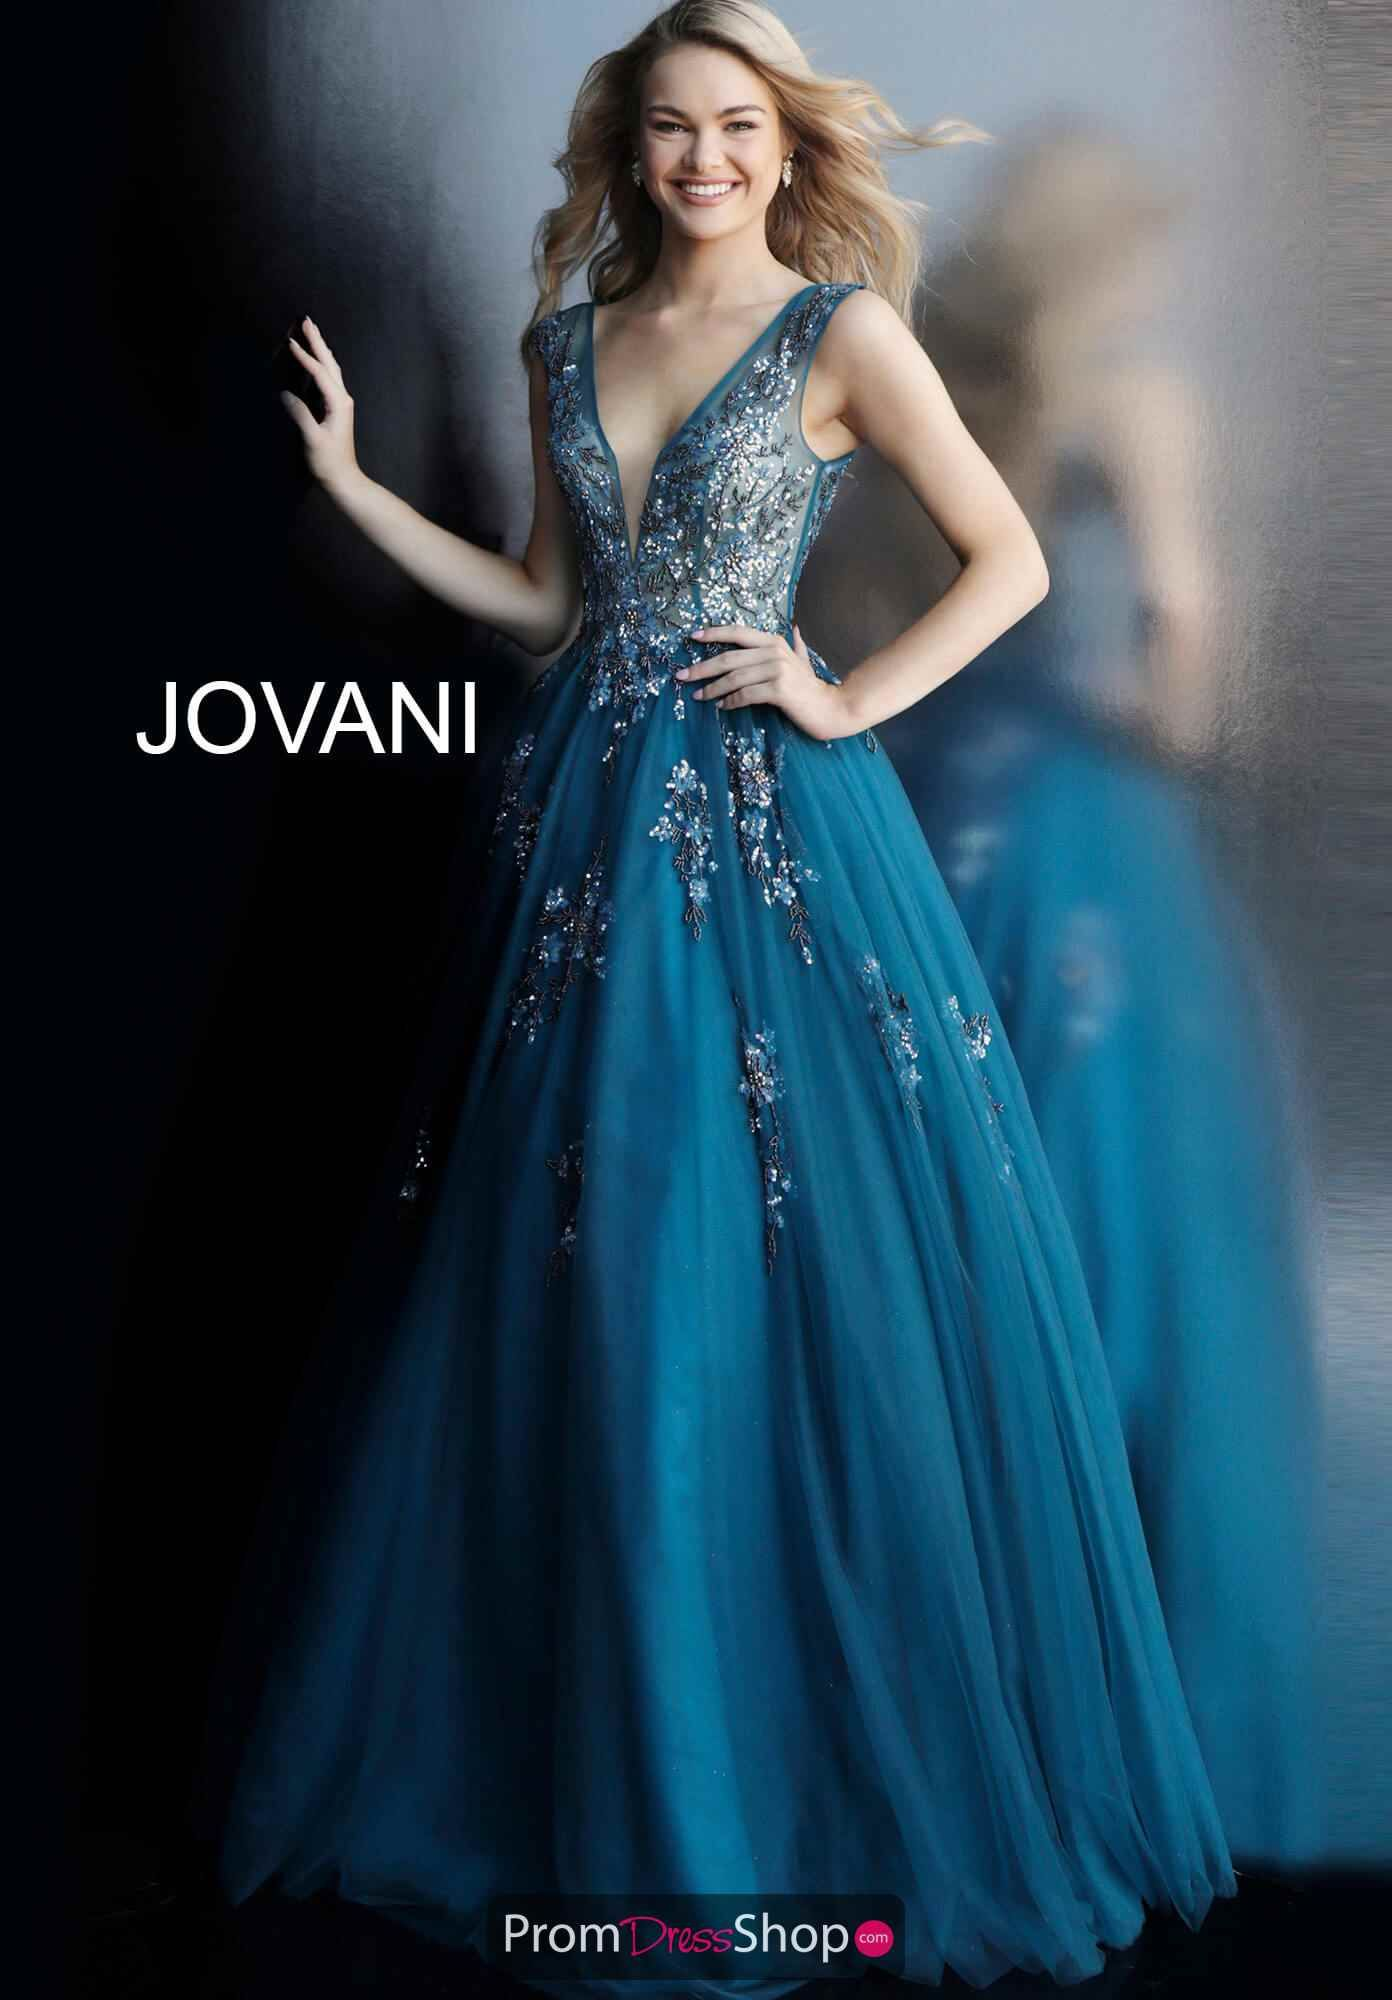 fdc22f414be Jovani Beaded Tulle A-Line Dress 62619 in 2019